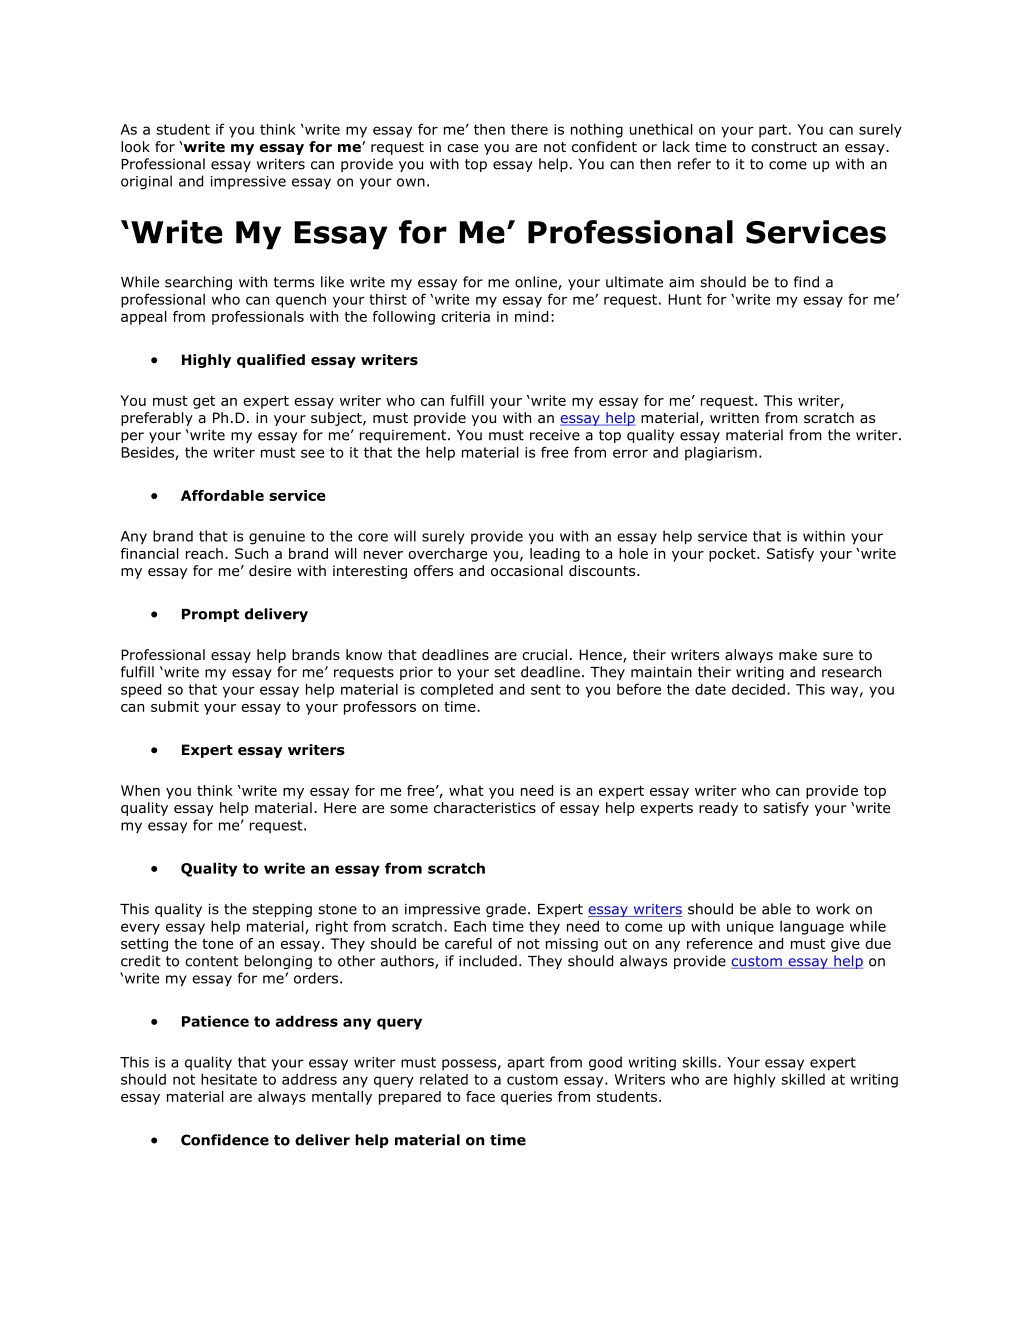 017 Write My Essay For Me Example As Student If You Think Surprising Free Online Generator Full